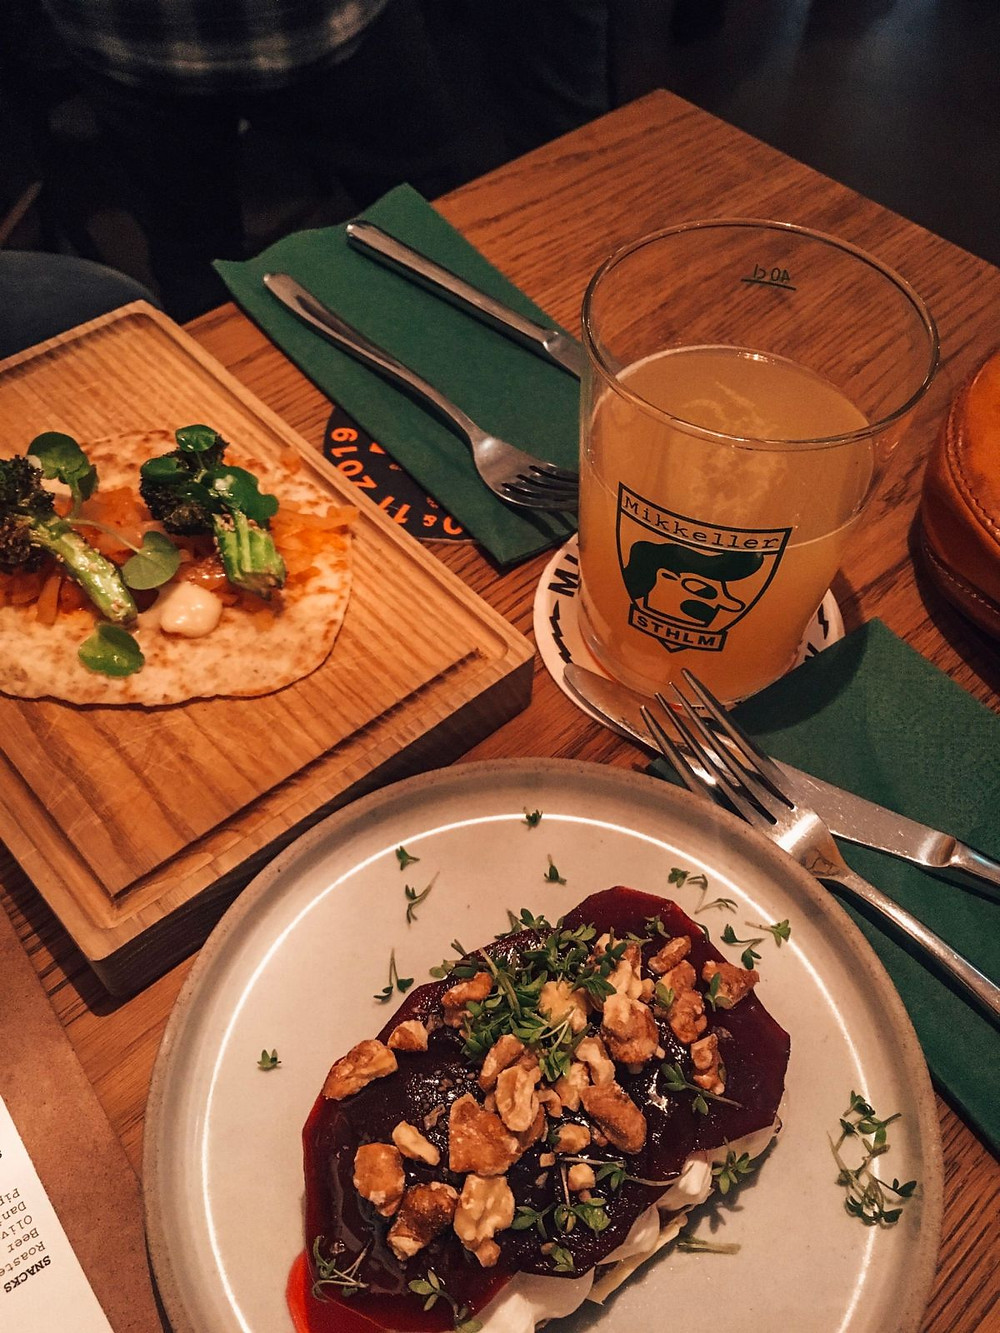 Smørrebrød and open-faced tortilla at Mikkeller bar